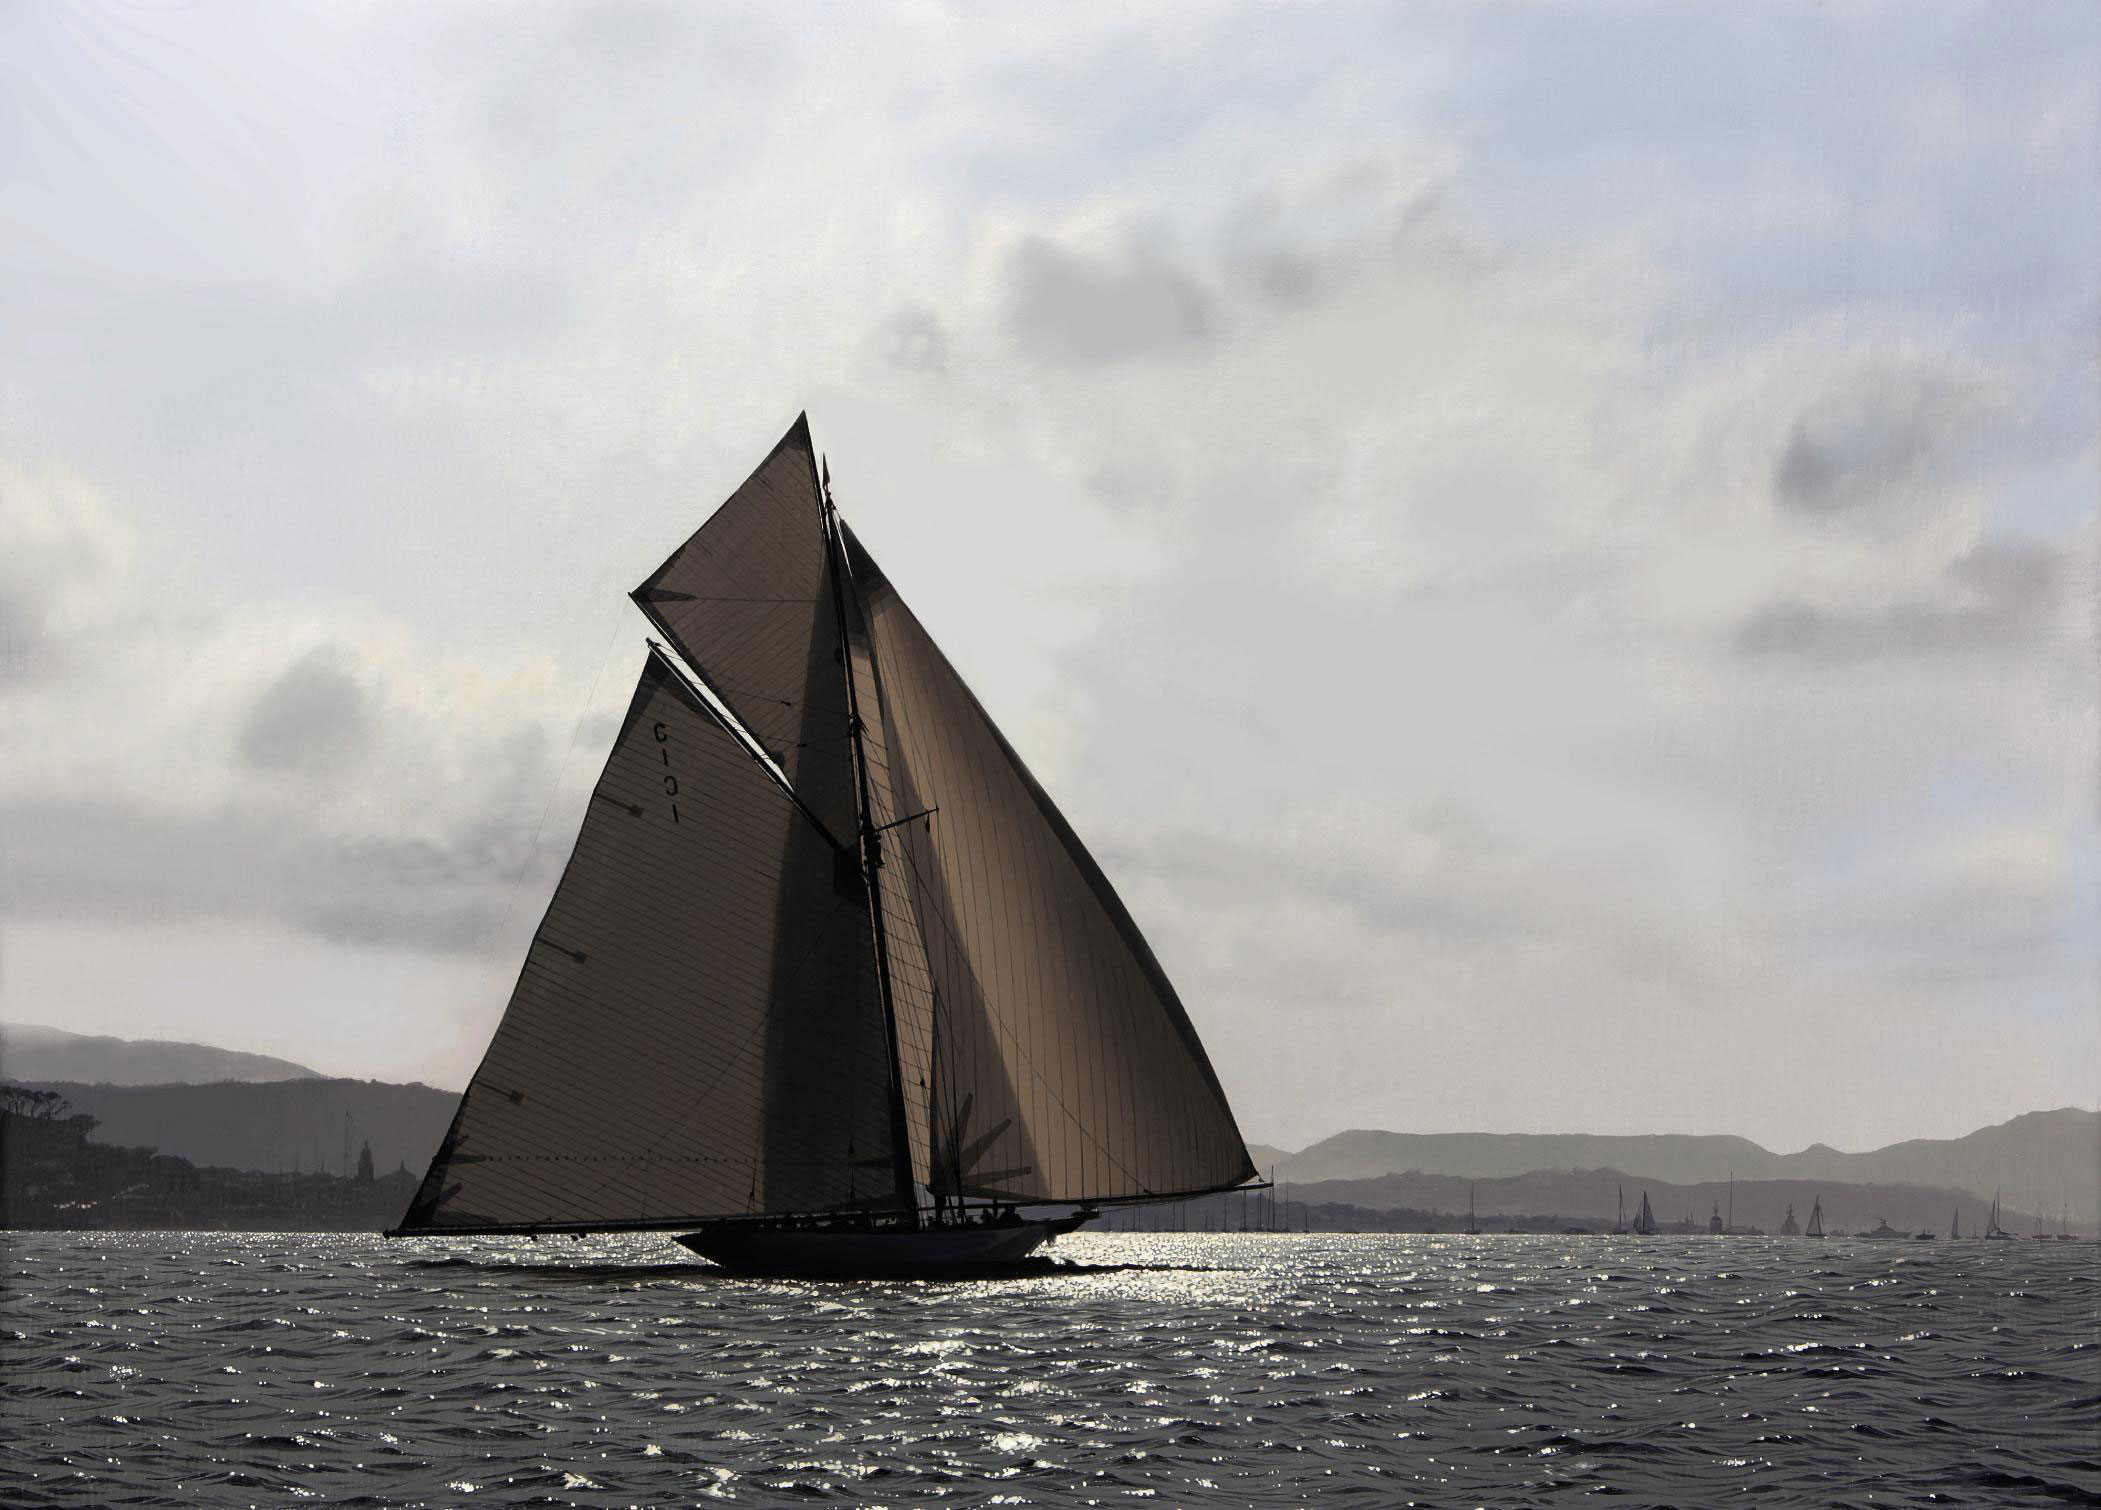 Mariquita in light airs during Thursday's race of Les Voiles de St. Tropez, 2007